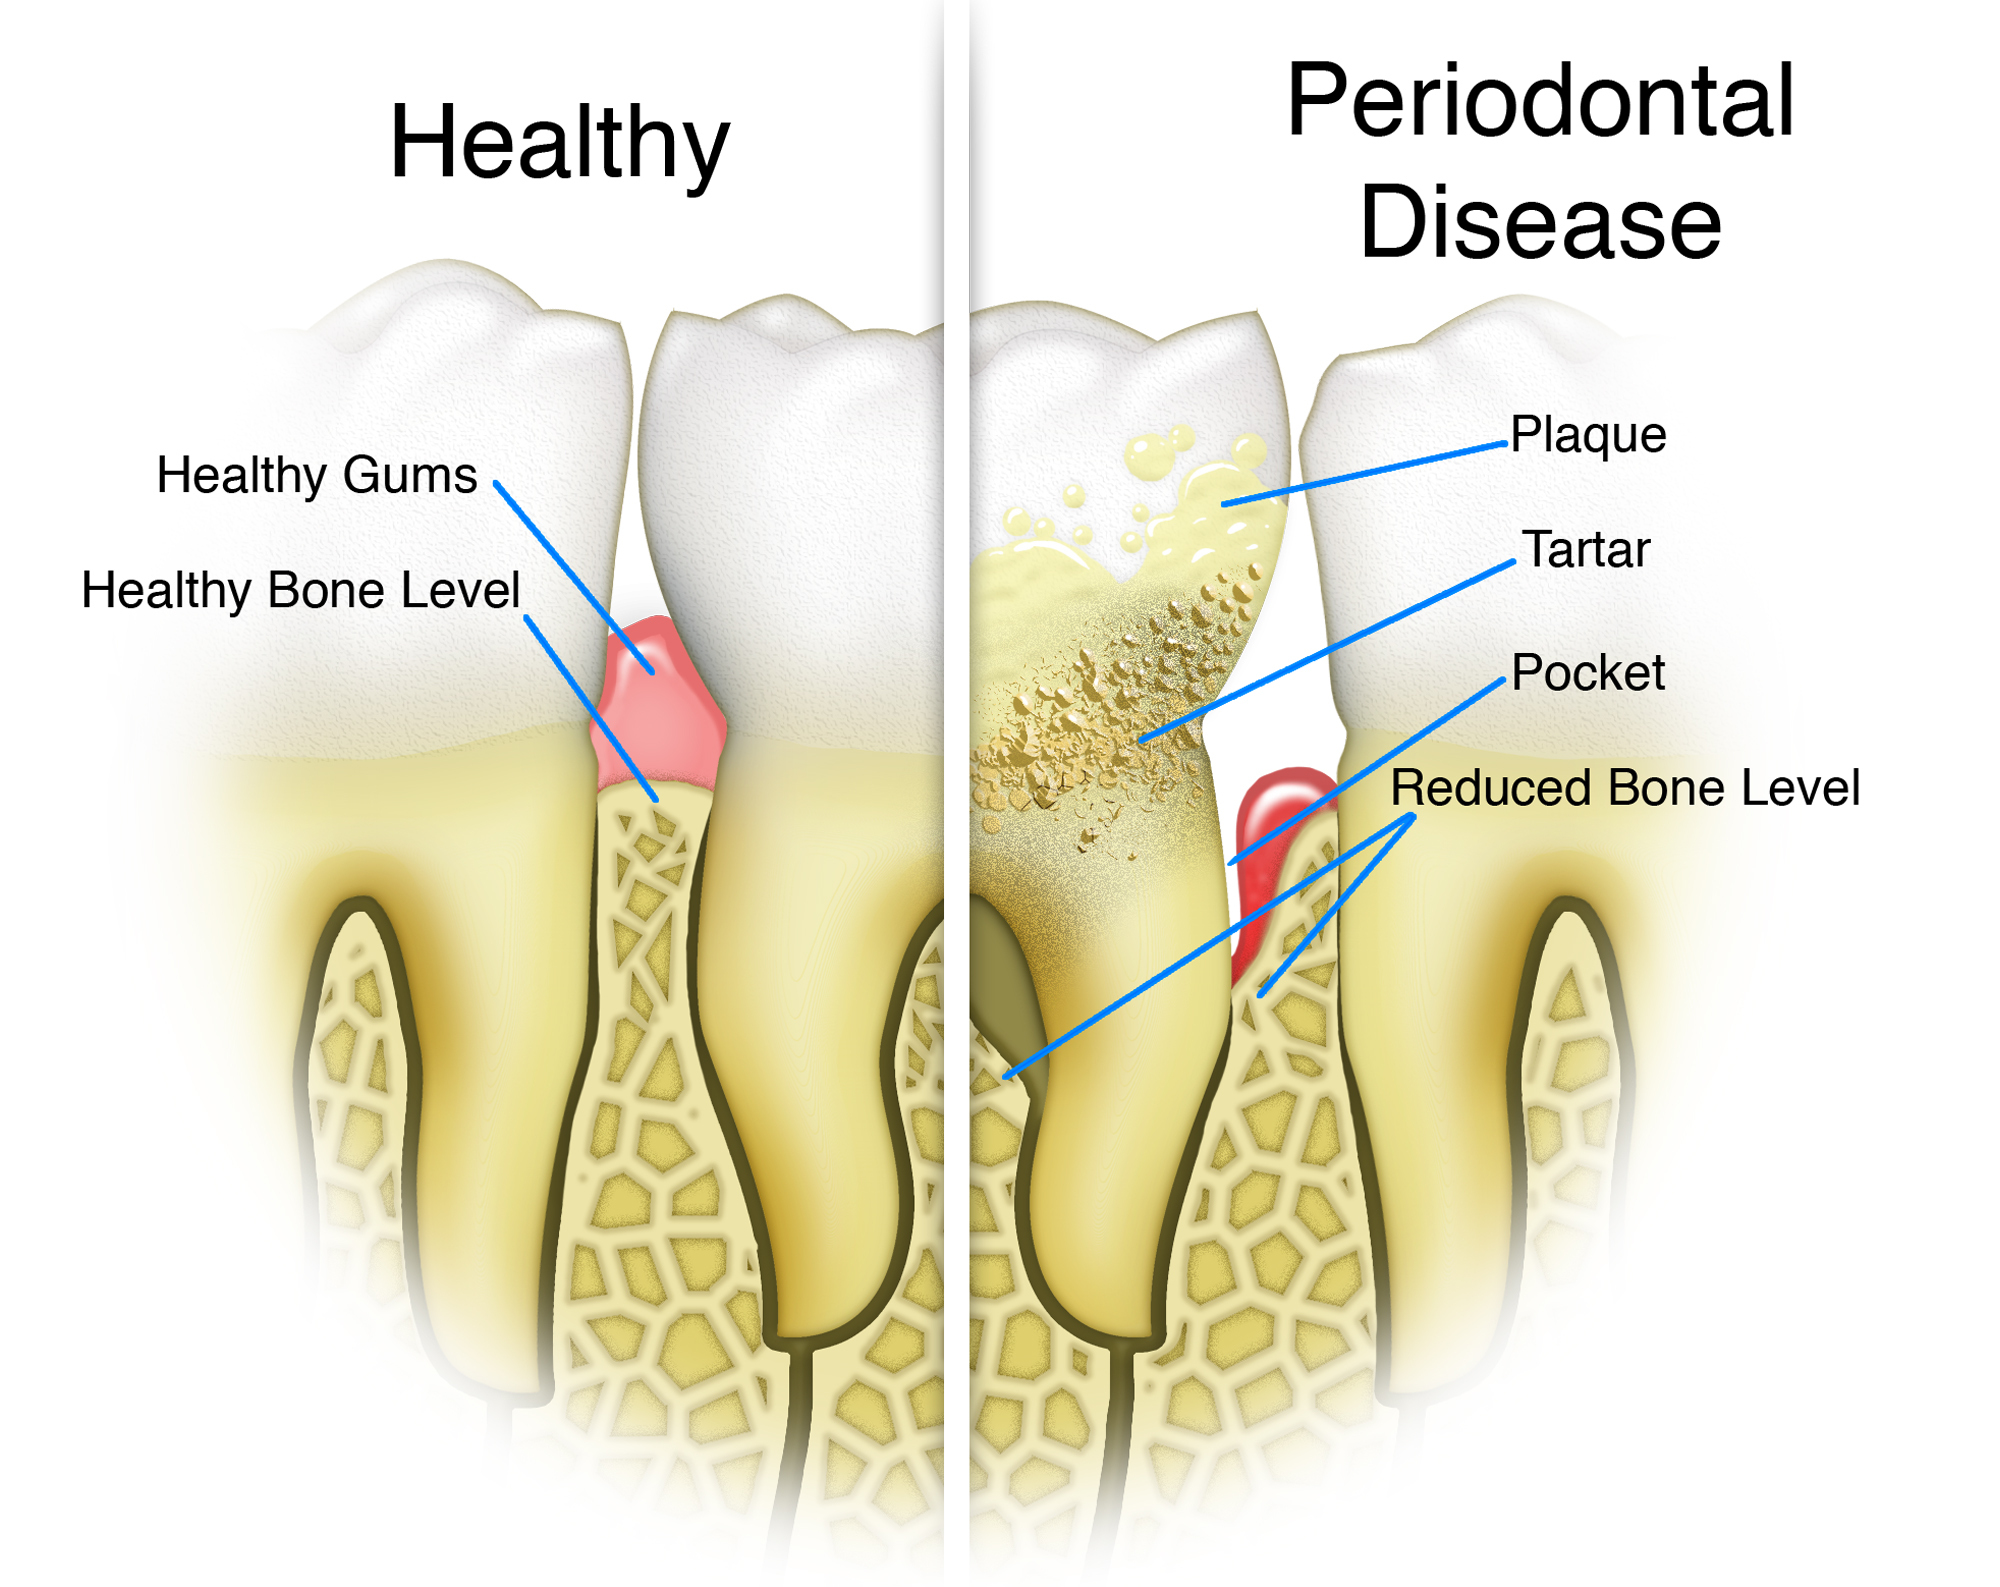 Periodontal Disease treatment at John T. Roane, DDS in Houston, TX